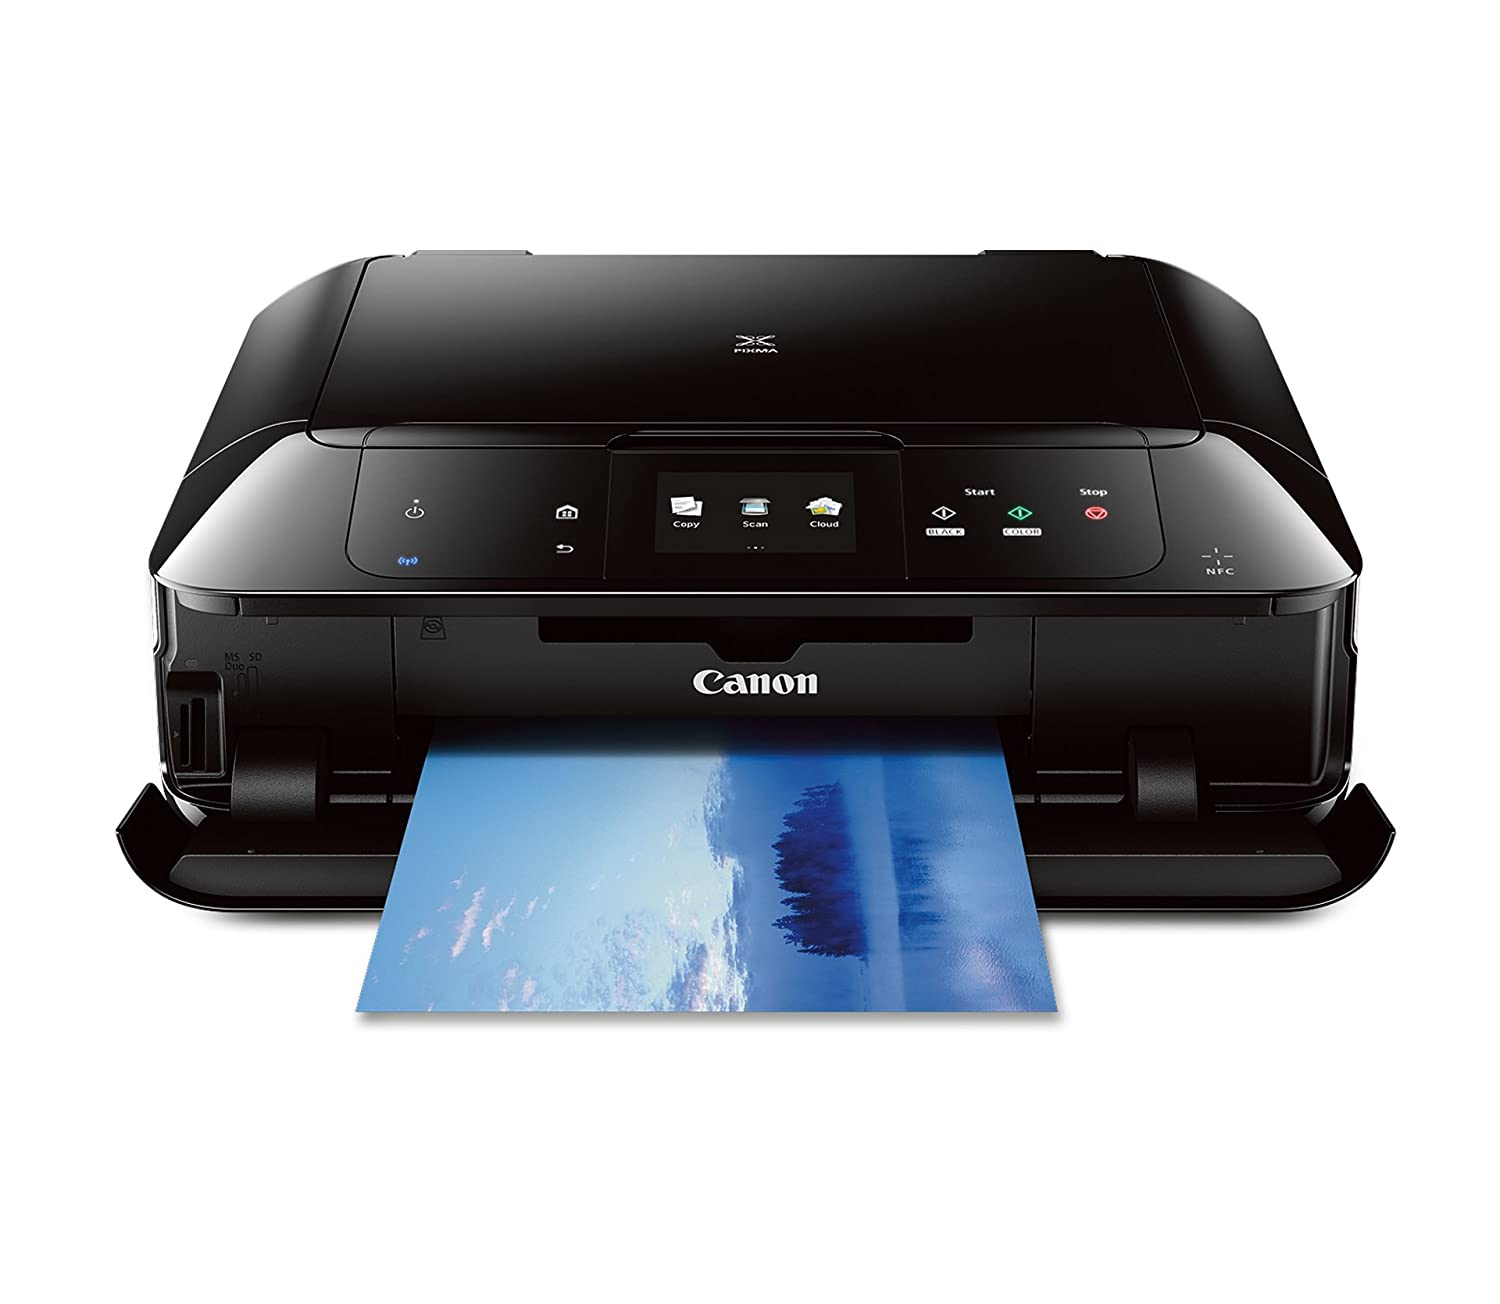 CANON MG7520 Wireless Color Cloud Printer with Scanner and Copier: Mobile, Smart Phone, Tablet Printer, and AirPrint(TM) Compatible,Black